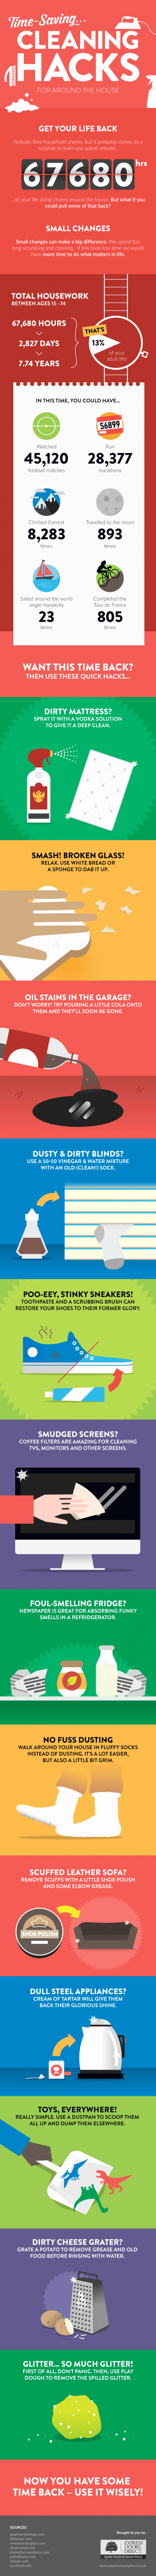 infographic describes cleaning hacks that save you time